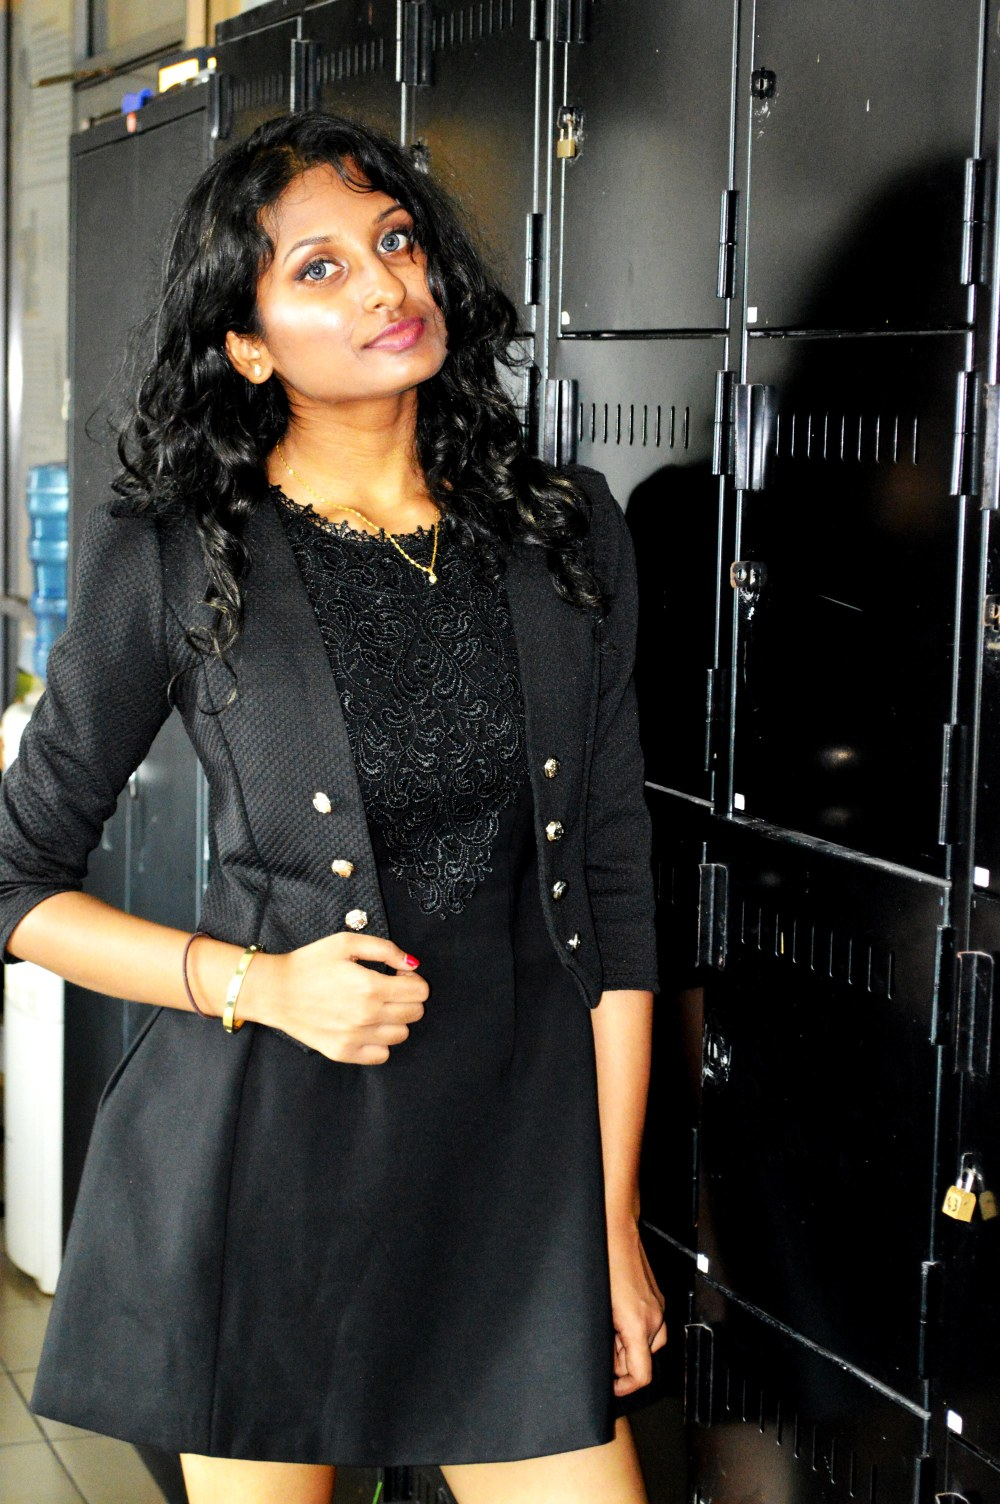 the-britlankan-burberry-stylenomics-little-black-dress-2